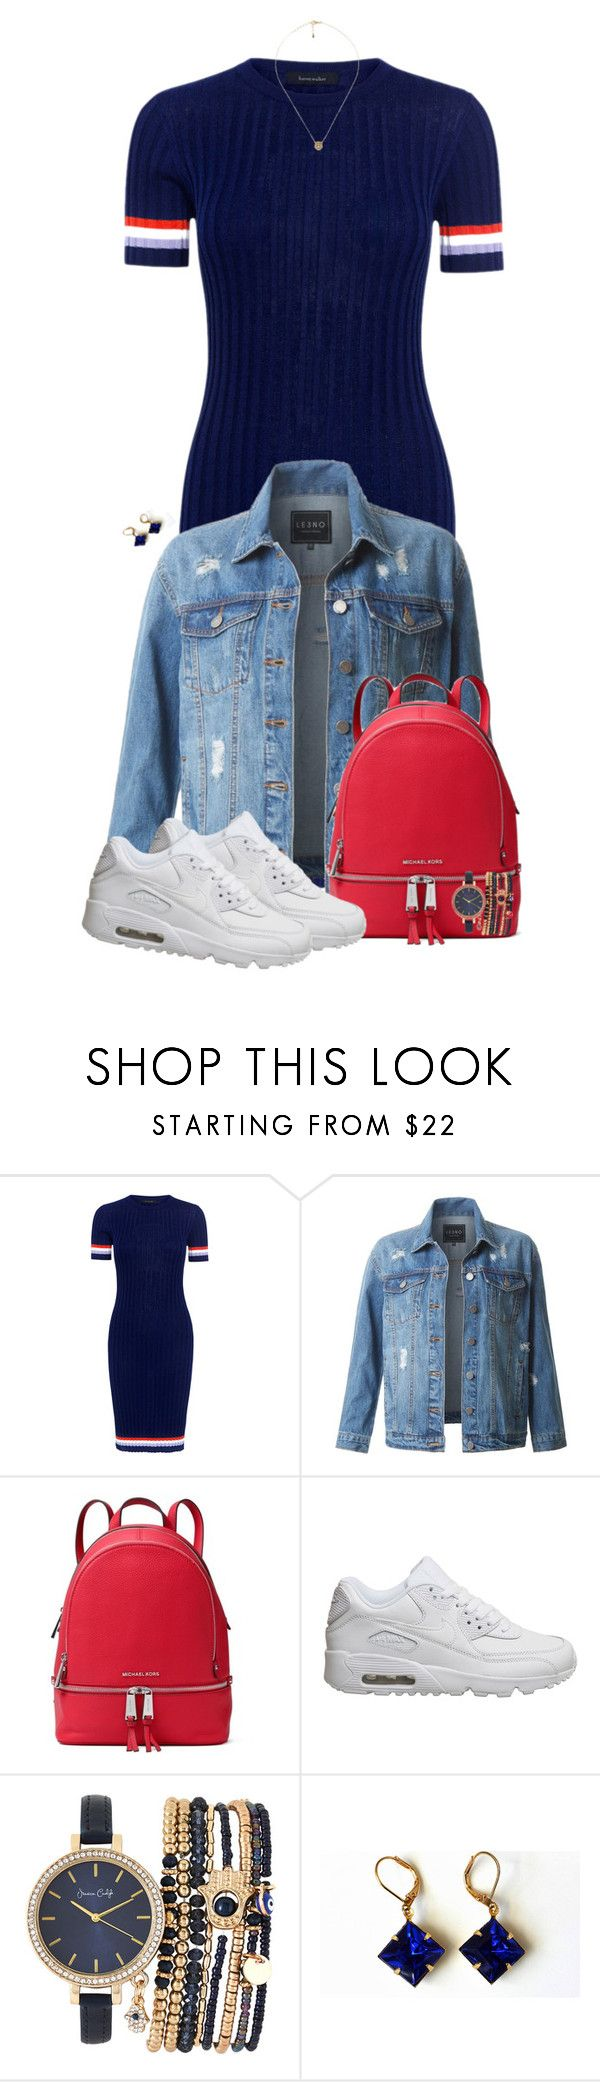 """Untitled #1126"" by xsheaintmex on Polyvore featuring Karen Walker, LE3NO, MICHAEL Michael Kors, NIKE, Jessica Carlyle, Gucci, justtheoutfit, weekendvibes and chicvibes"